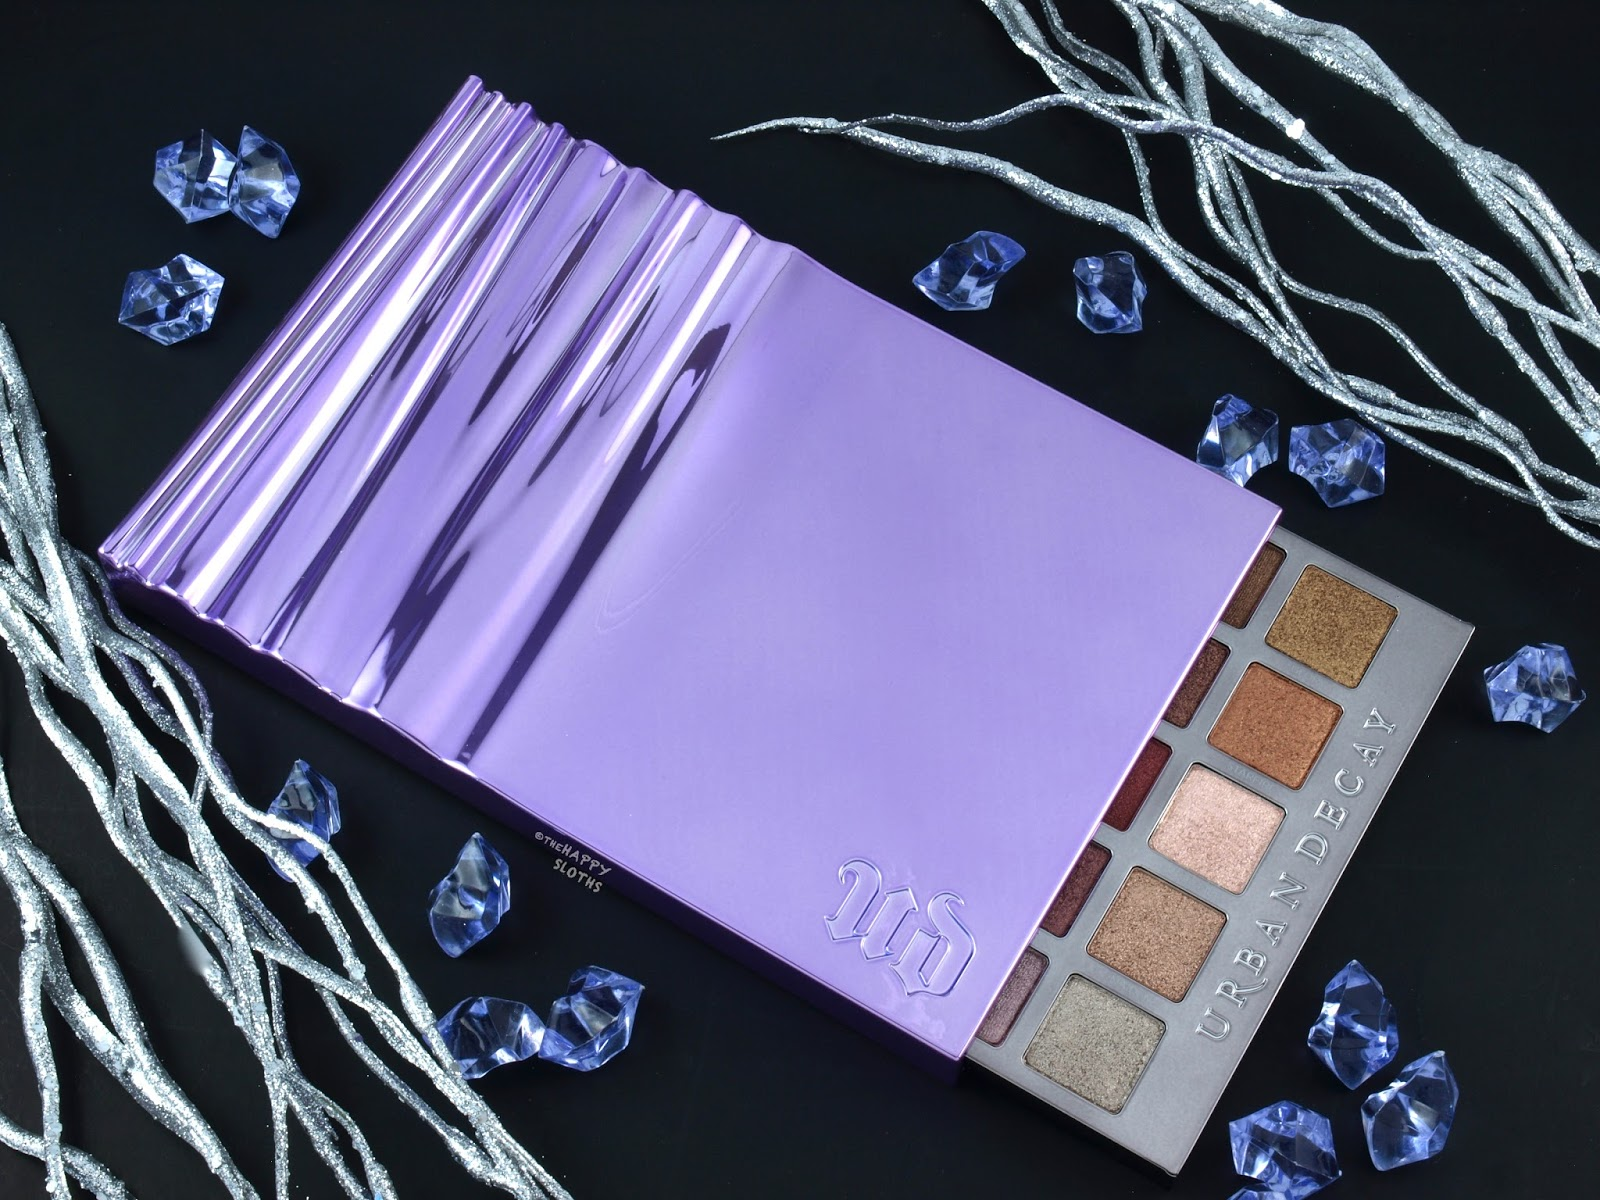 Urban Decay Heavy Metals Metallic Eyeshadow Palette: Review and Swatches